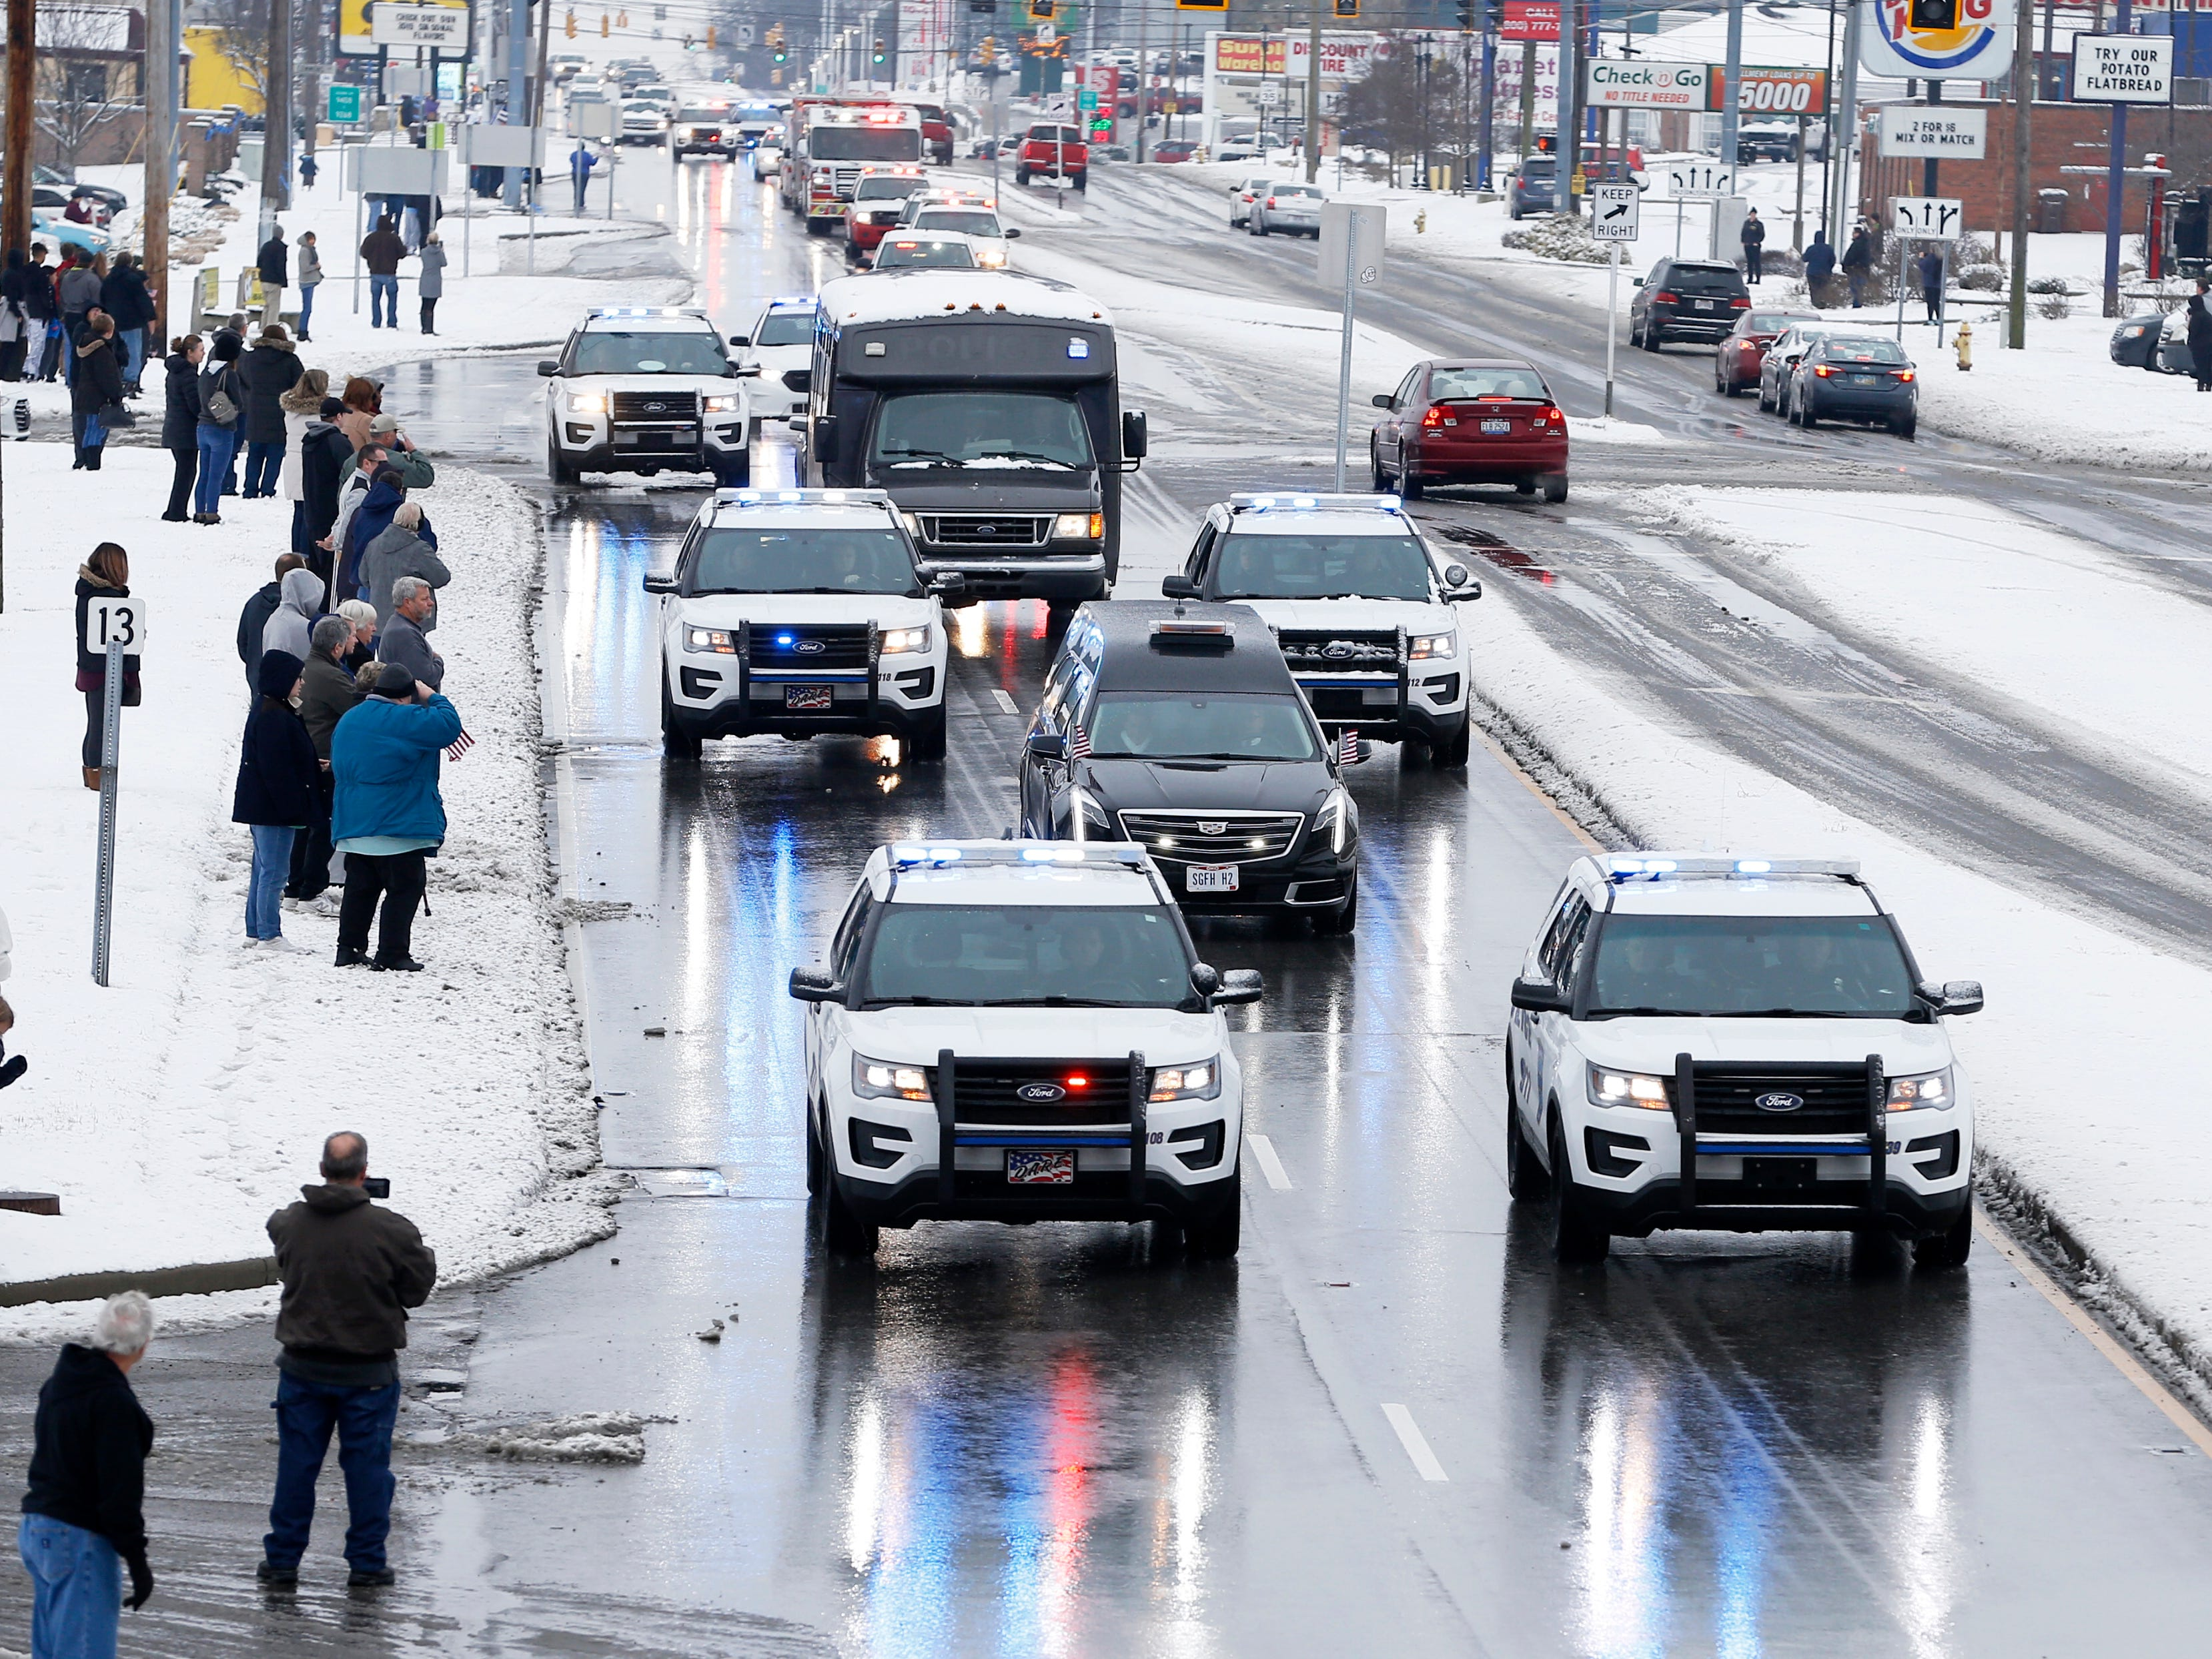 The funeral procession for Colerain Police Officer Dale Woods travels north on Colerain Avenue Saturday January 12, 2019. Dale Woods, 46, died Monday after being hit by a pickup truck Jan. 4 while working at the scene of a crash.